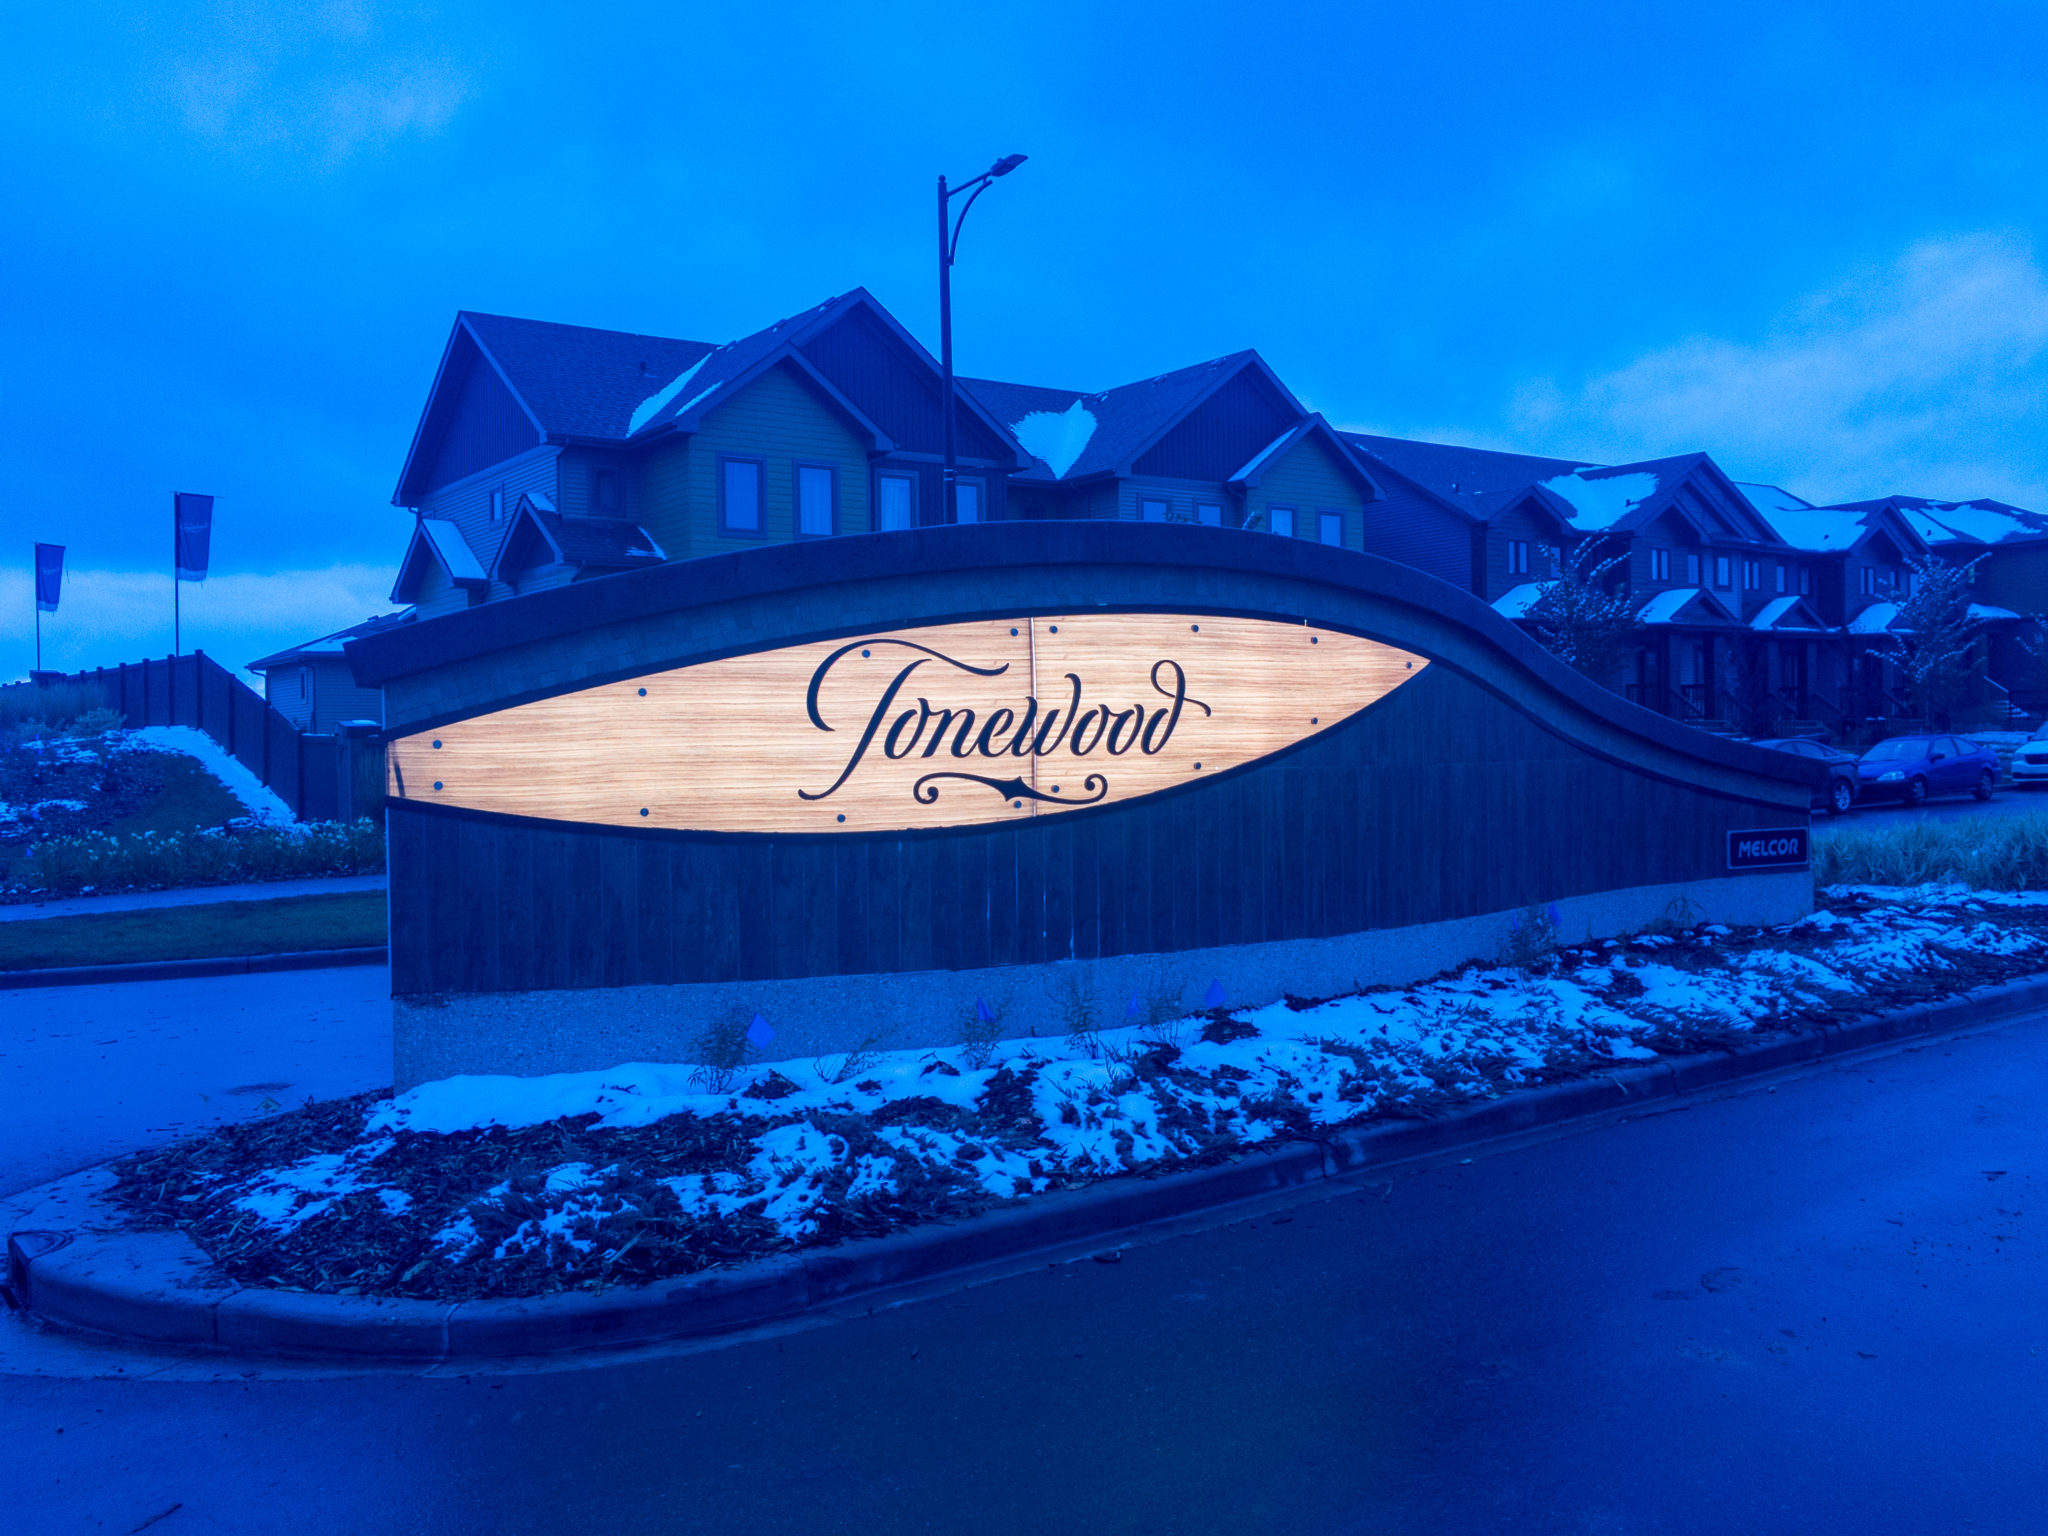 Entrance feature driving into the Tonewood Community, lit up at night